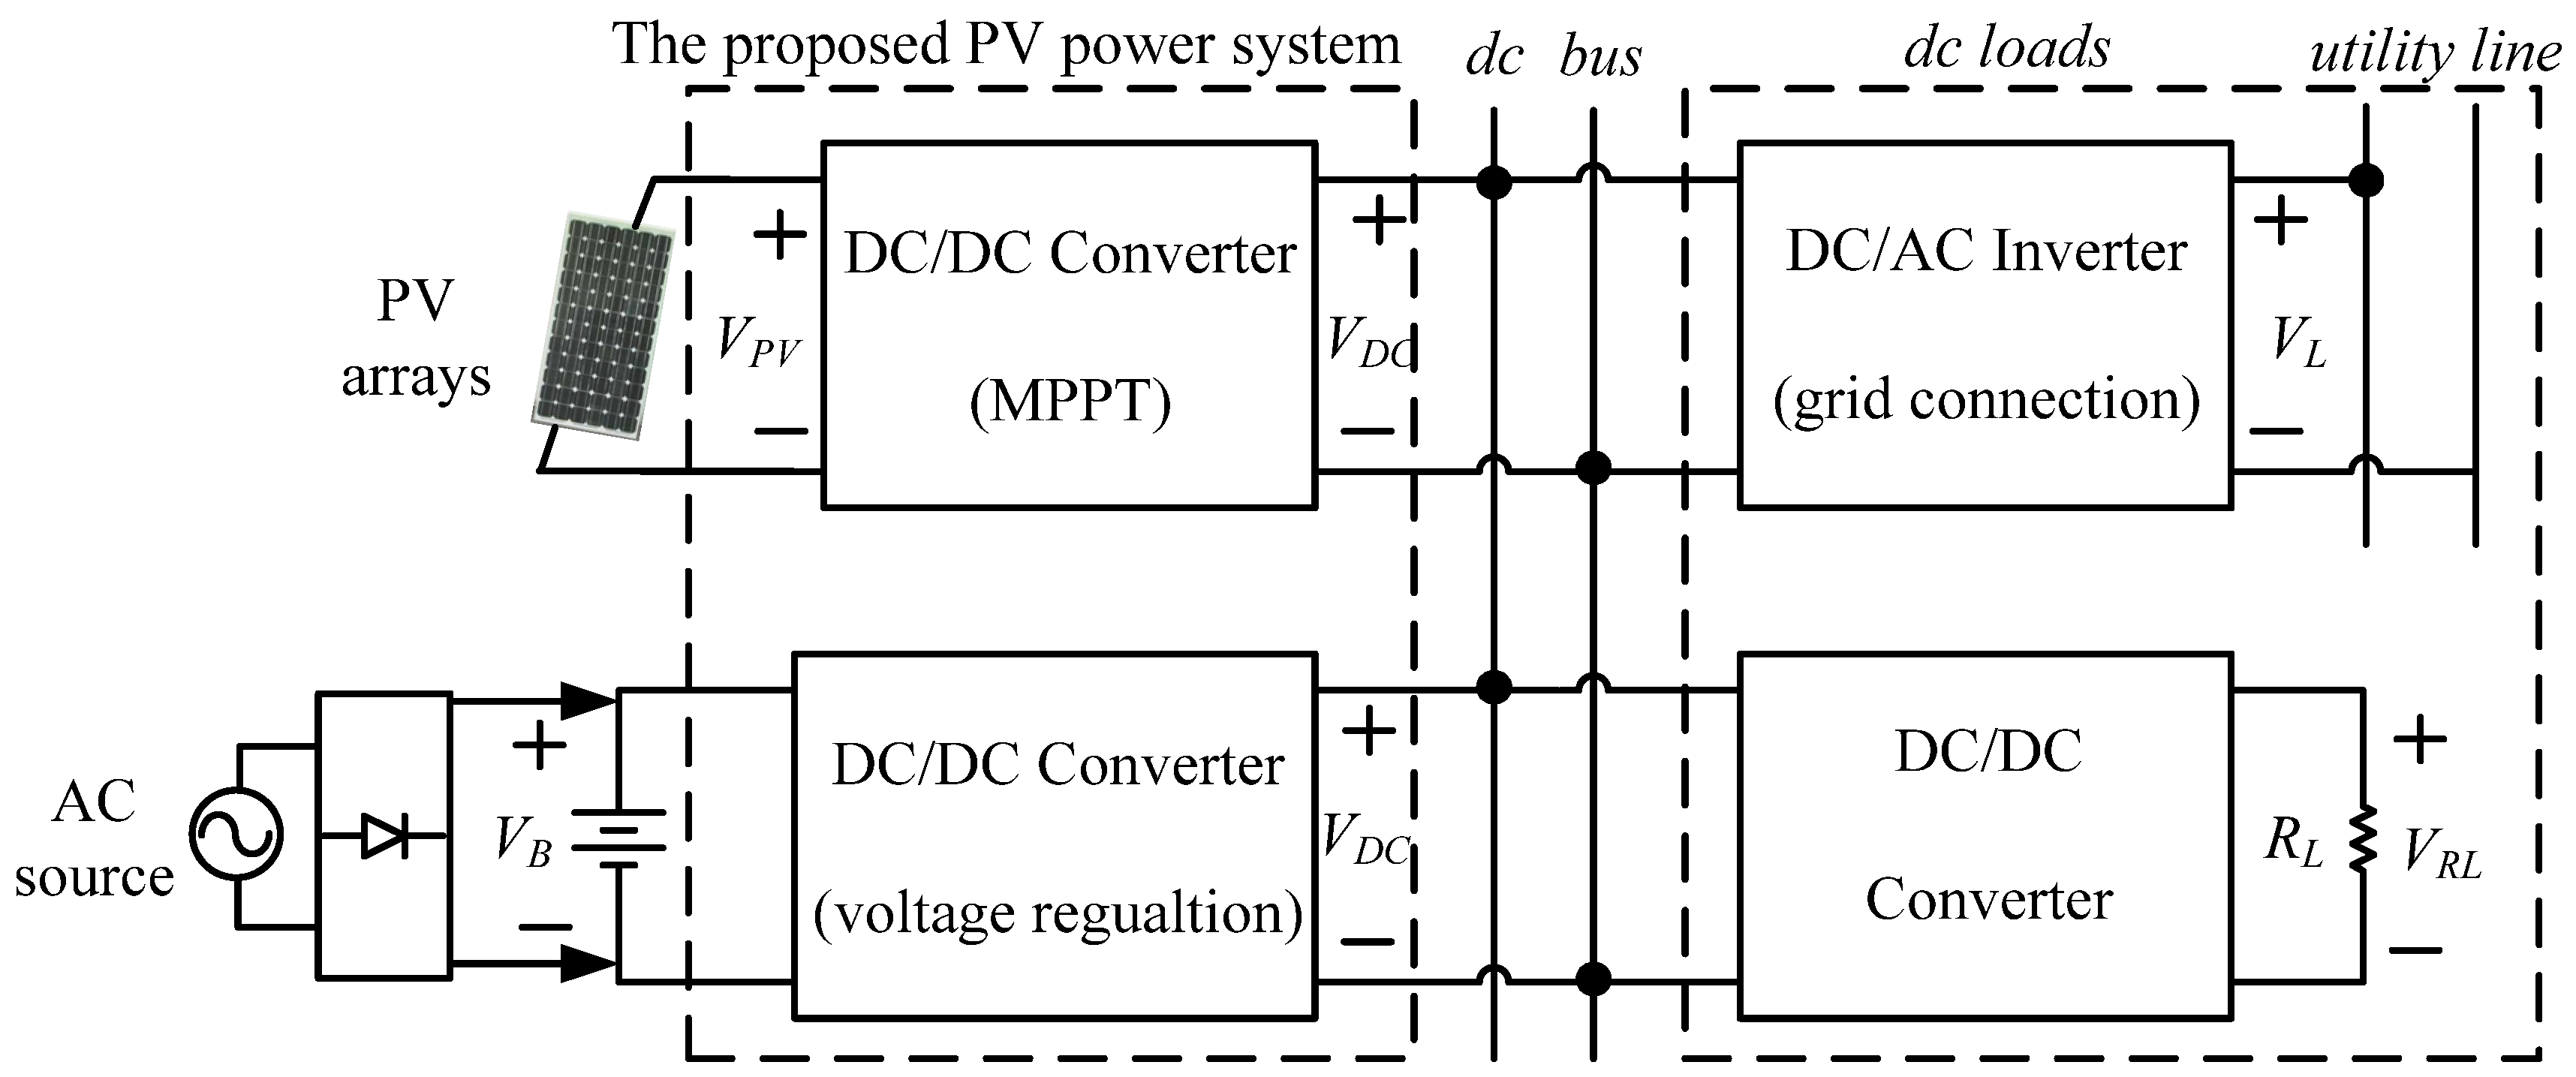 Energies Free Full Text A Photovoltaic Power System Using High Car Battery Wiring Diagram Moreover Dc To Ac Converter Circuit 06 01068 G001